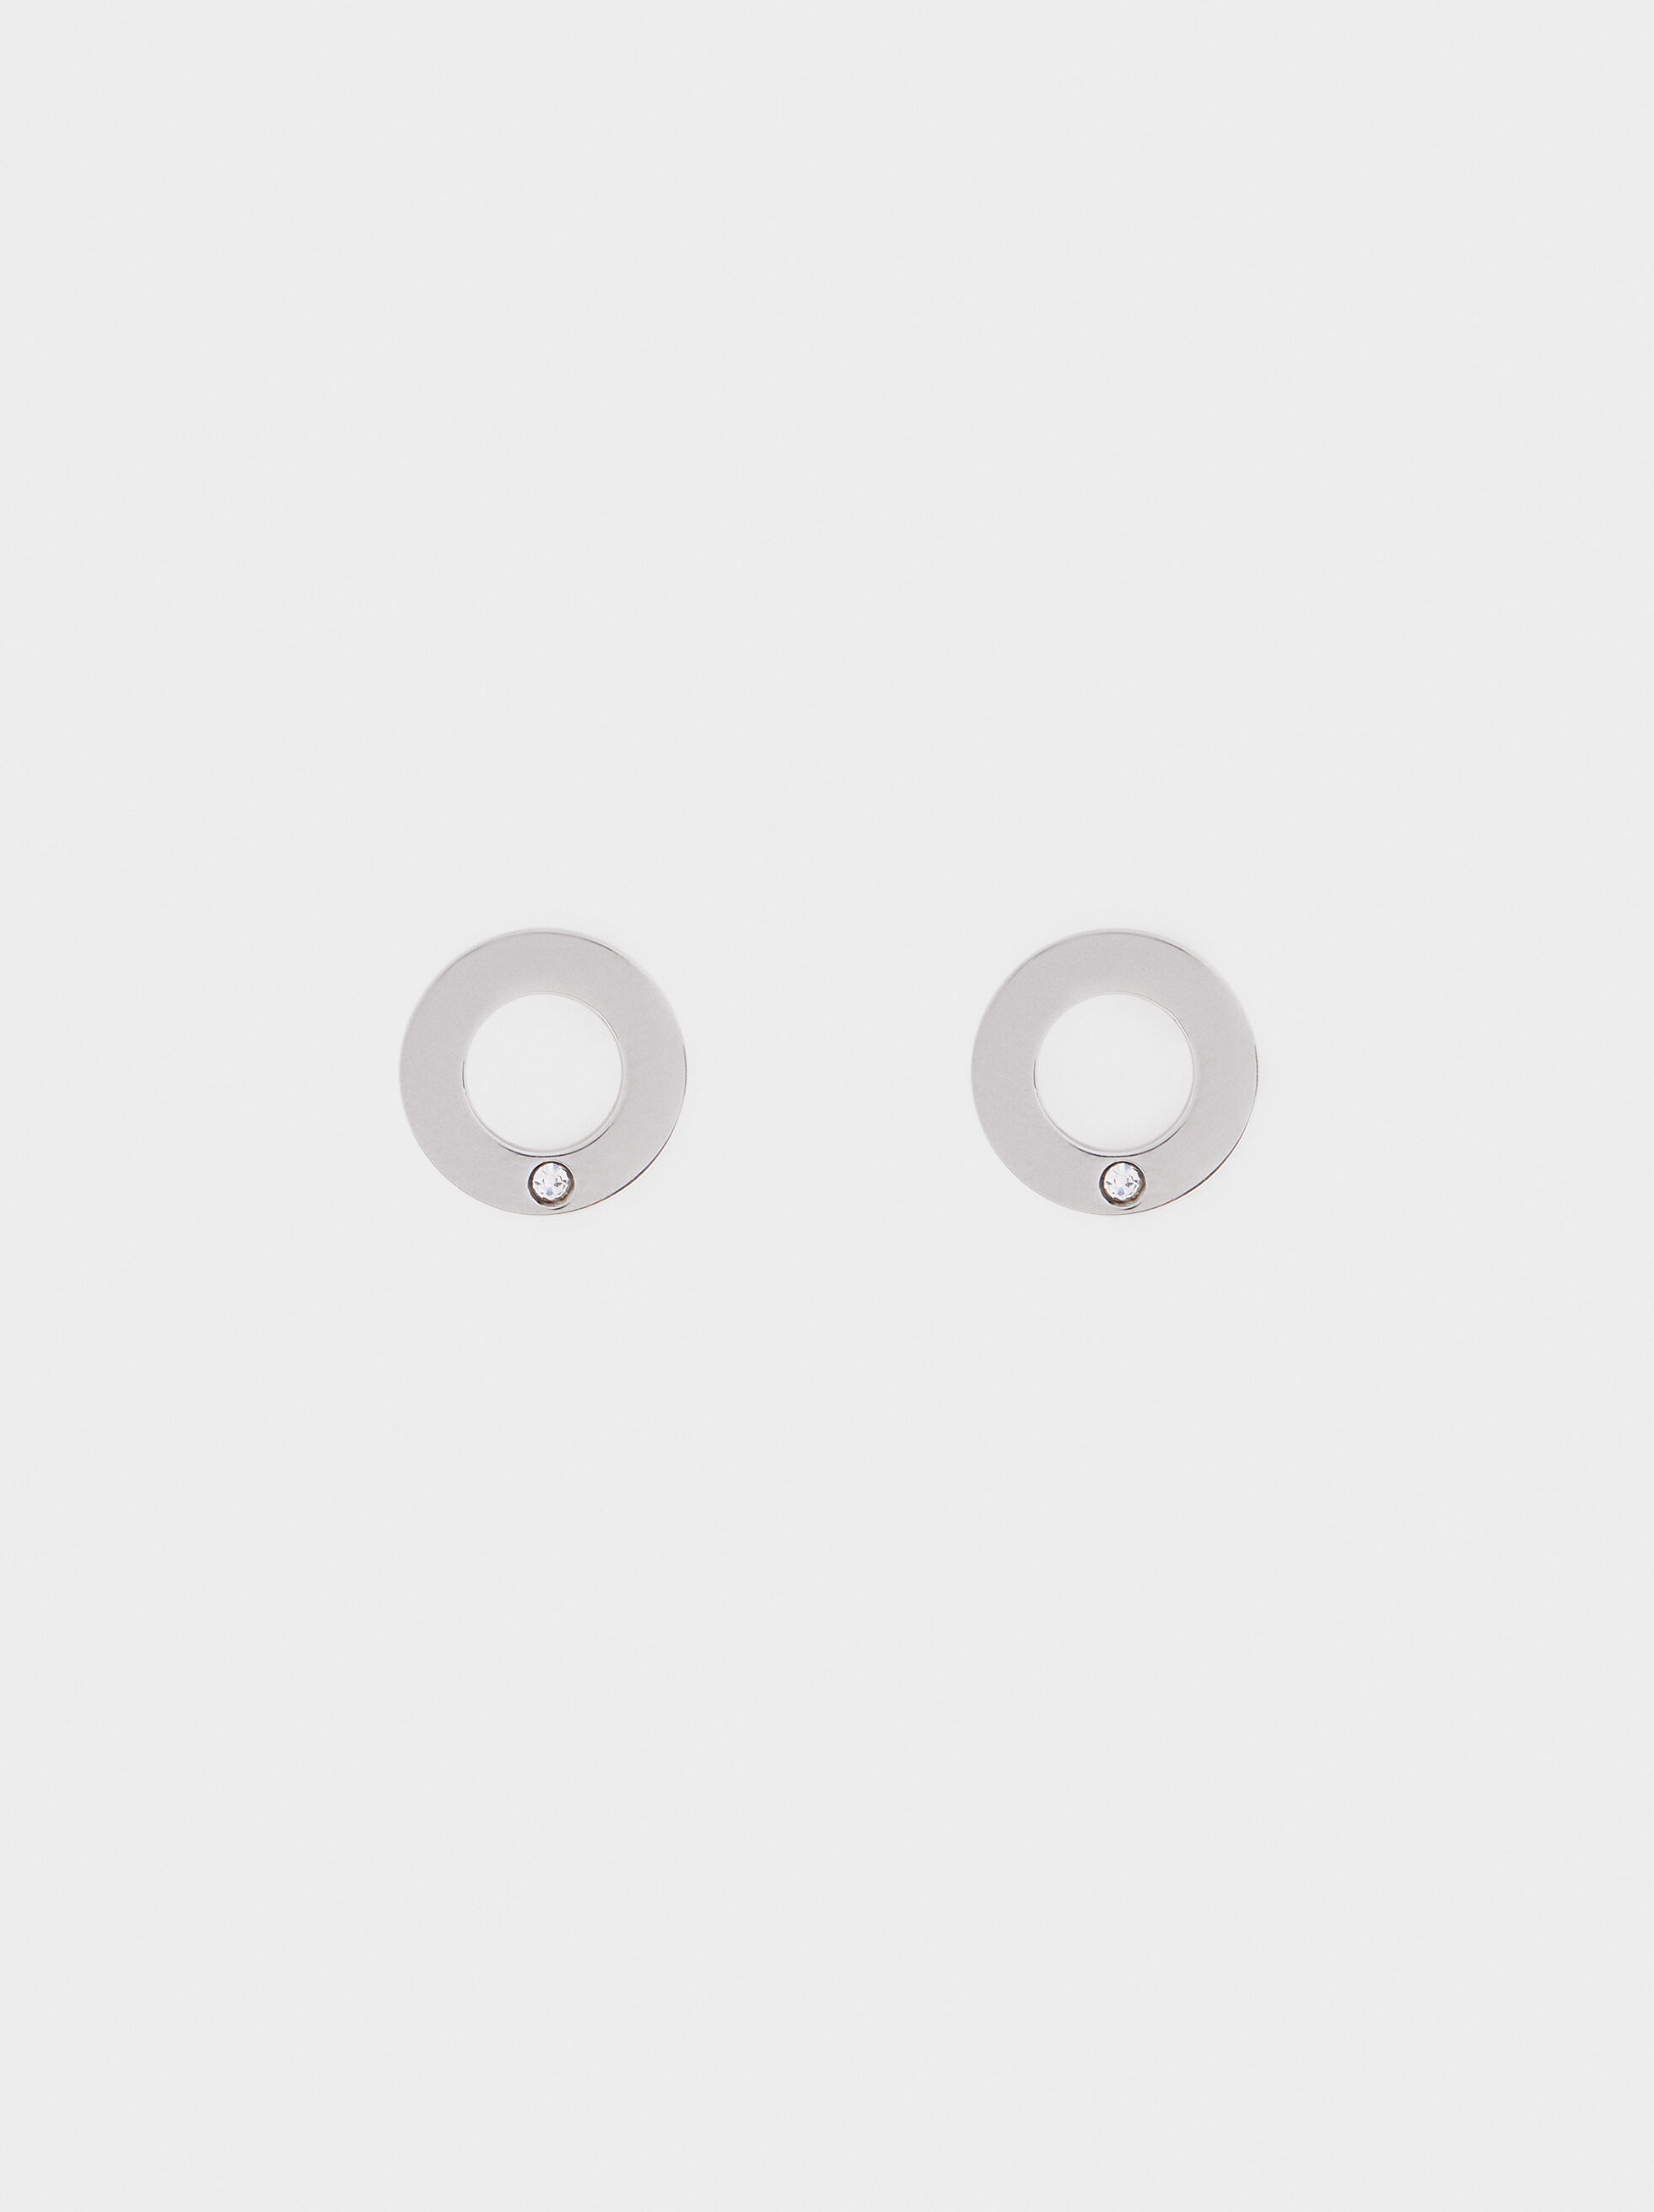 Small Silver-Plated Stainless Steel Circular Earrings, Silver, hi-res